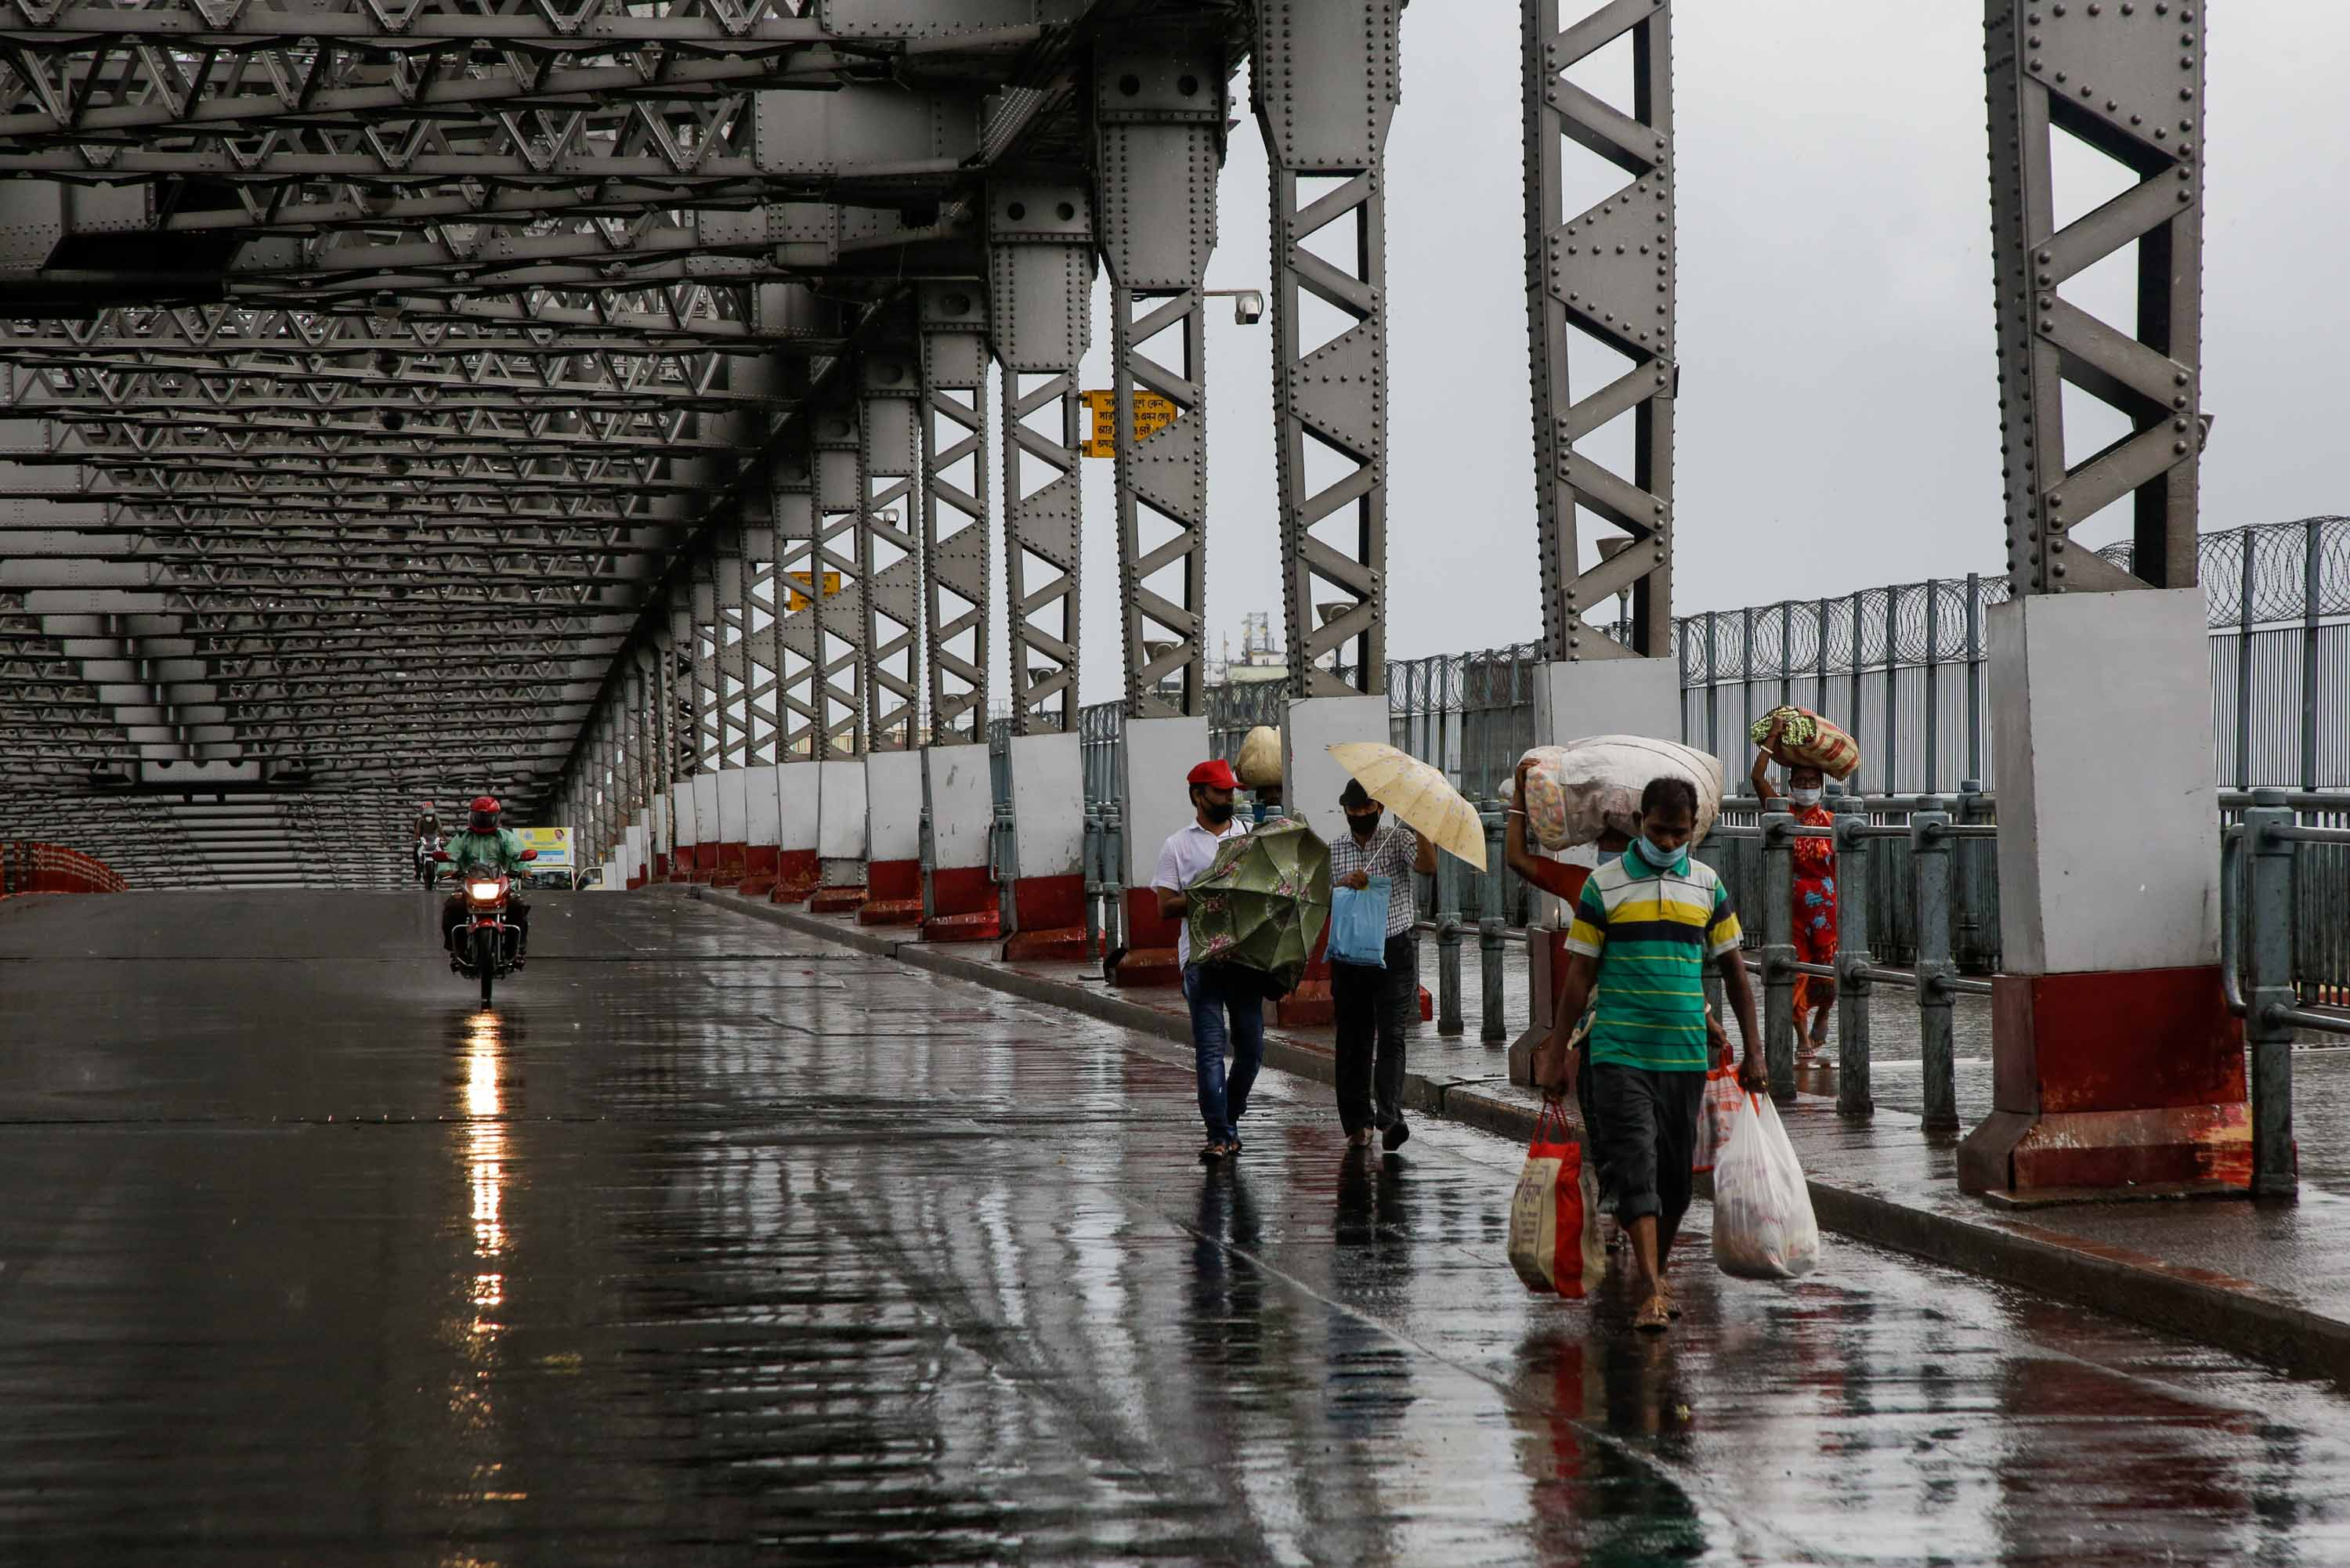 Commuters walk along the city's iconic landmark, Howrah Bridge to cross the Hooghly River as it rains in Kolkata, India, on May 20.